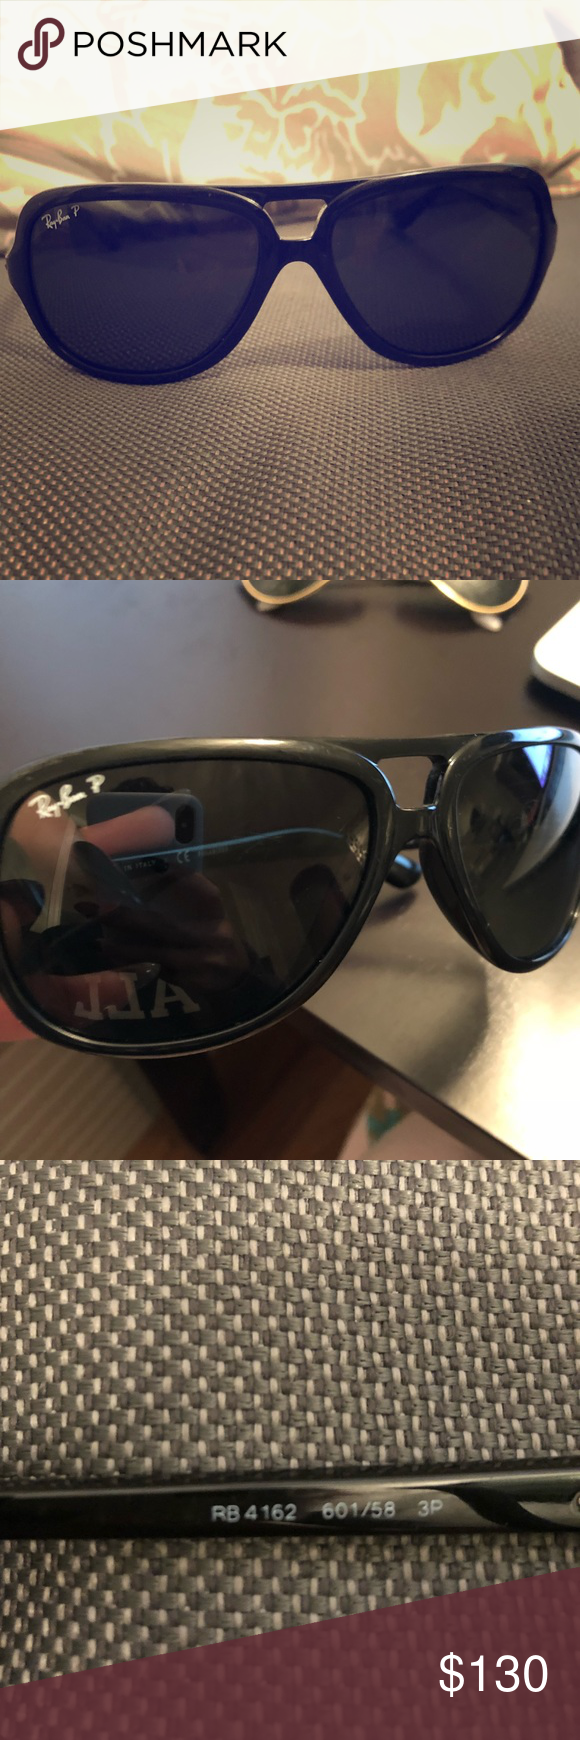 4a13dfbd9ca04 ... sunglasses cb4c4 6e3bc  get ray ban cats 5000 classic rb 4162 polarized  cats classic. black with dark green